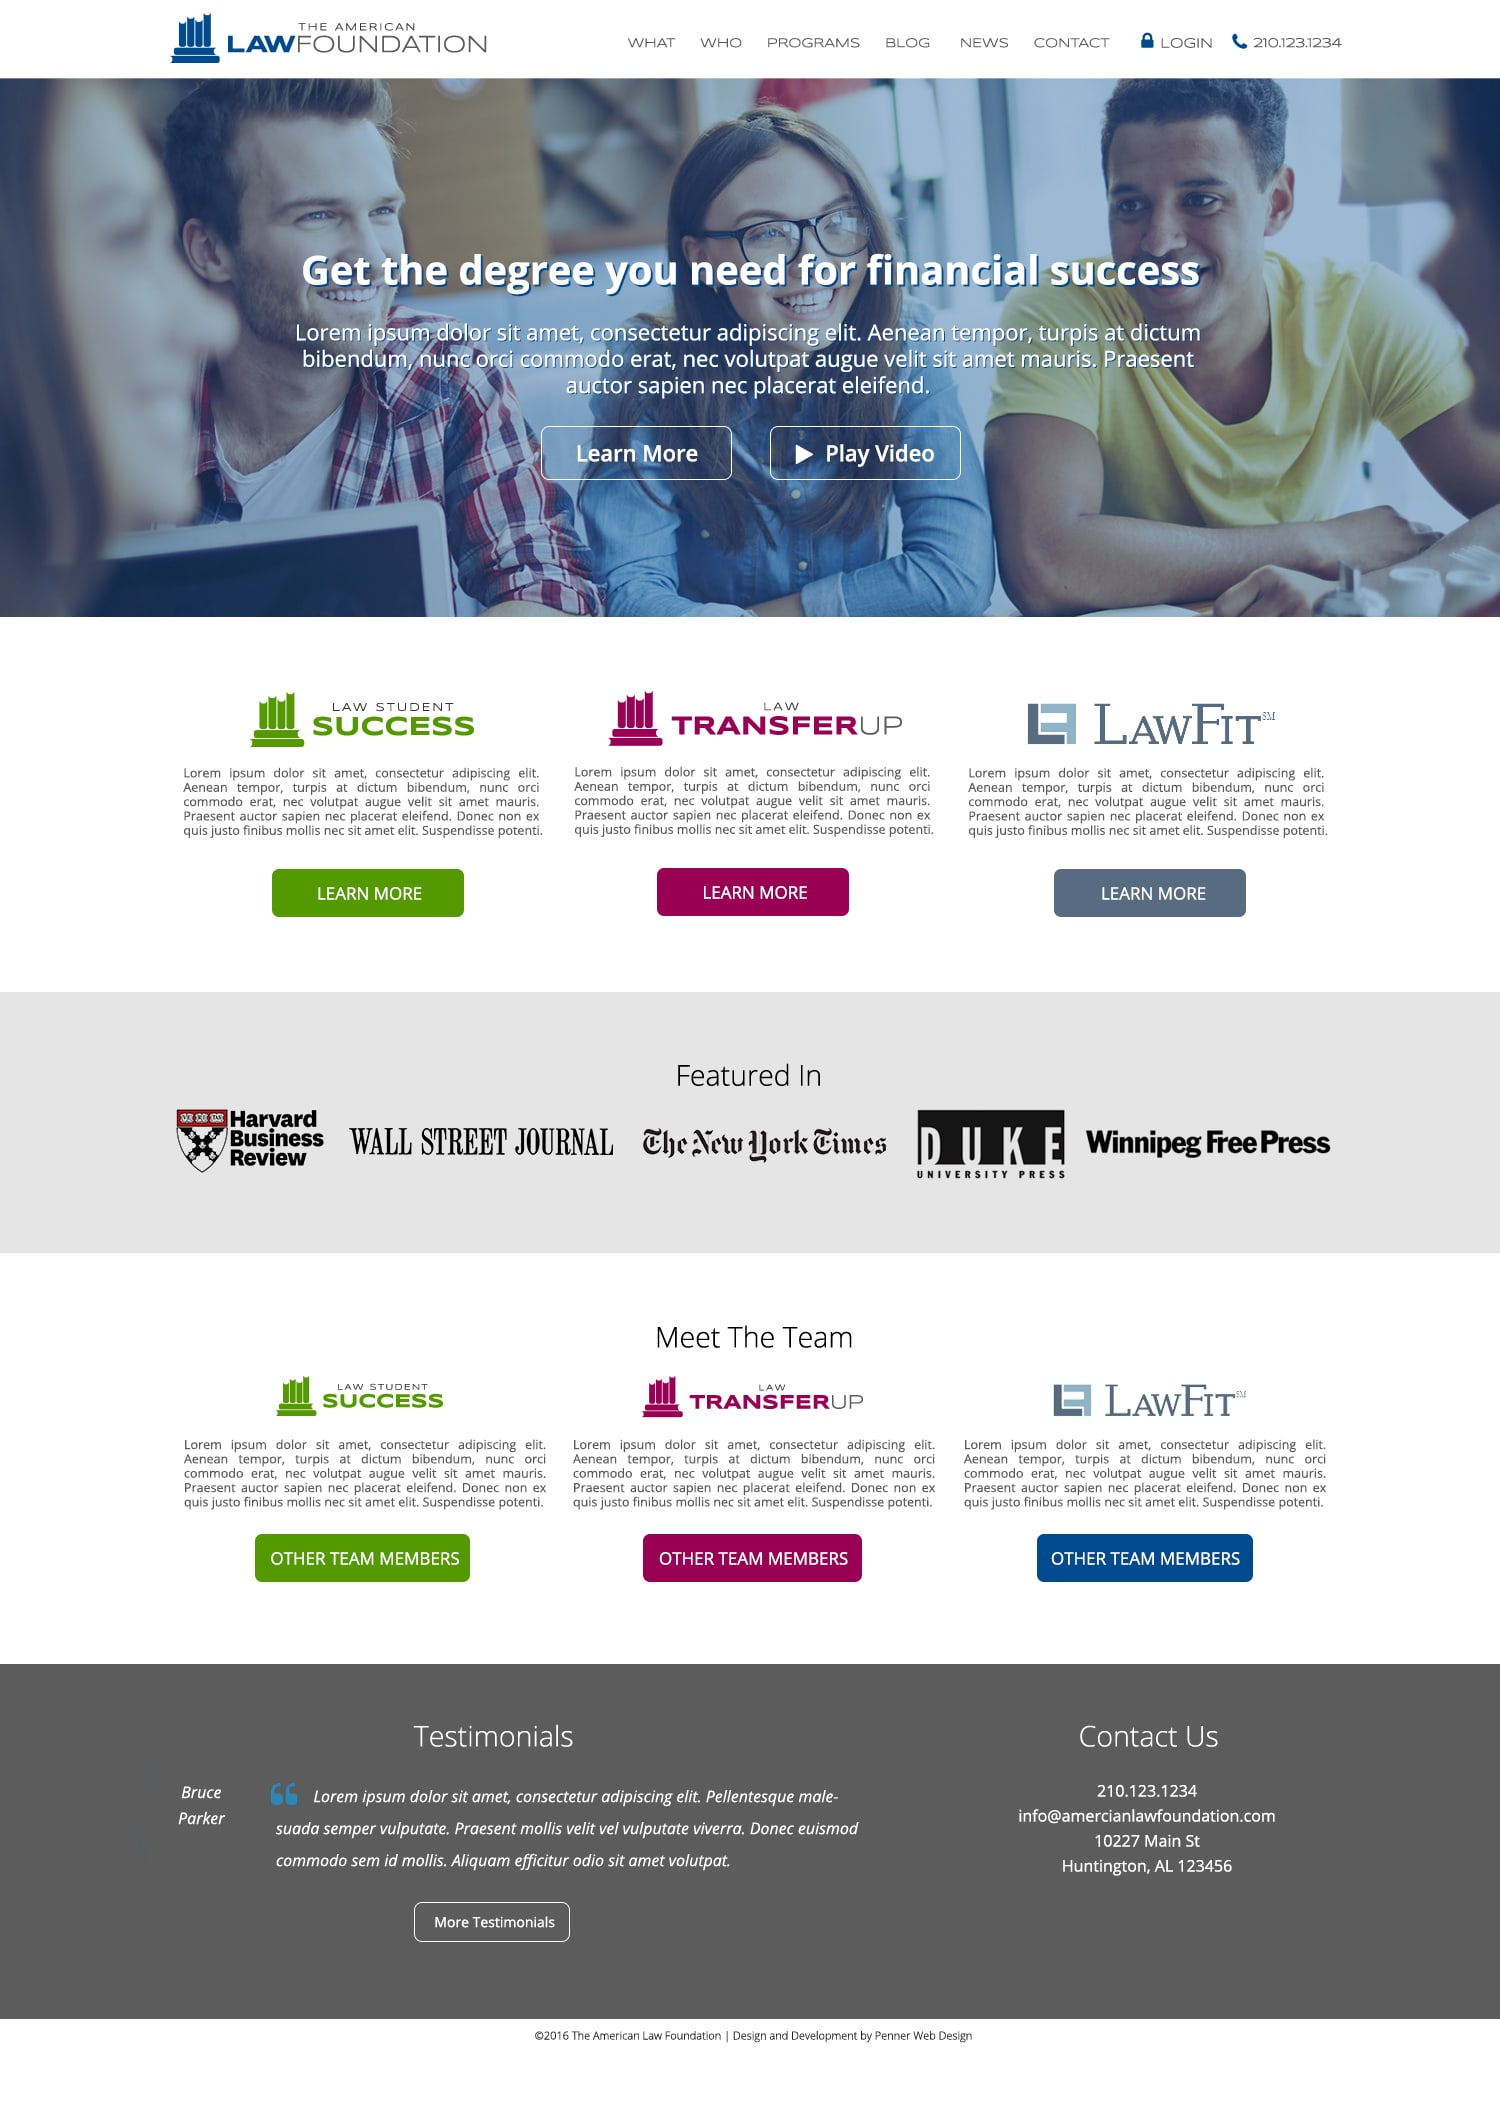 american-law-foundation-website-design